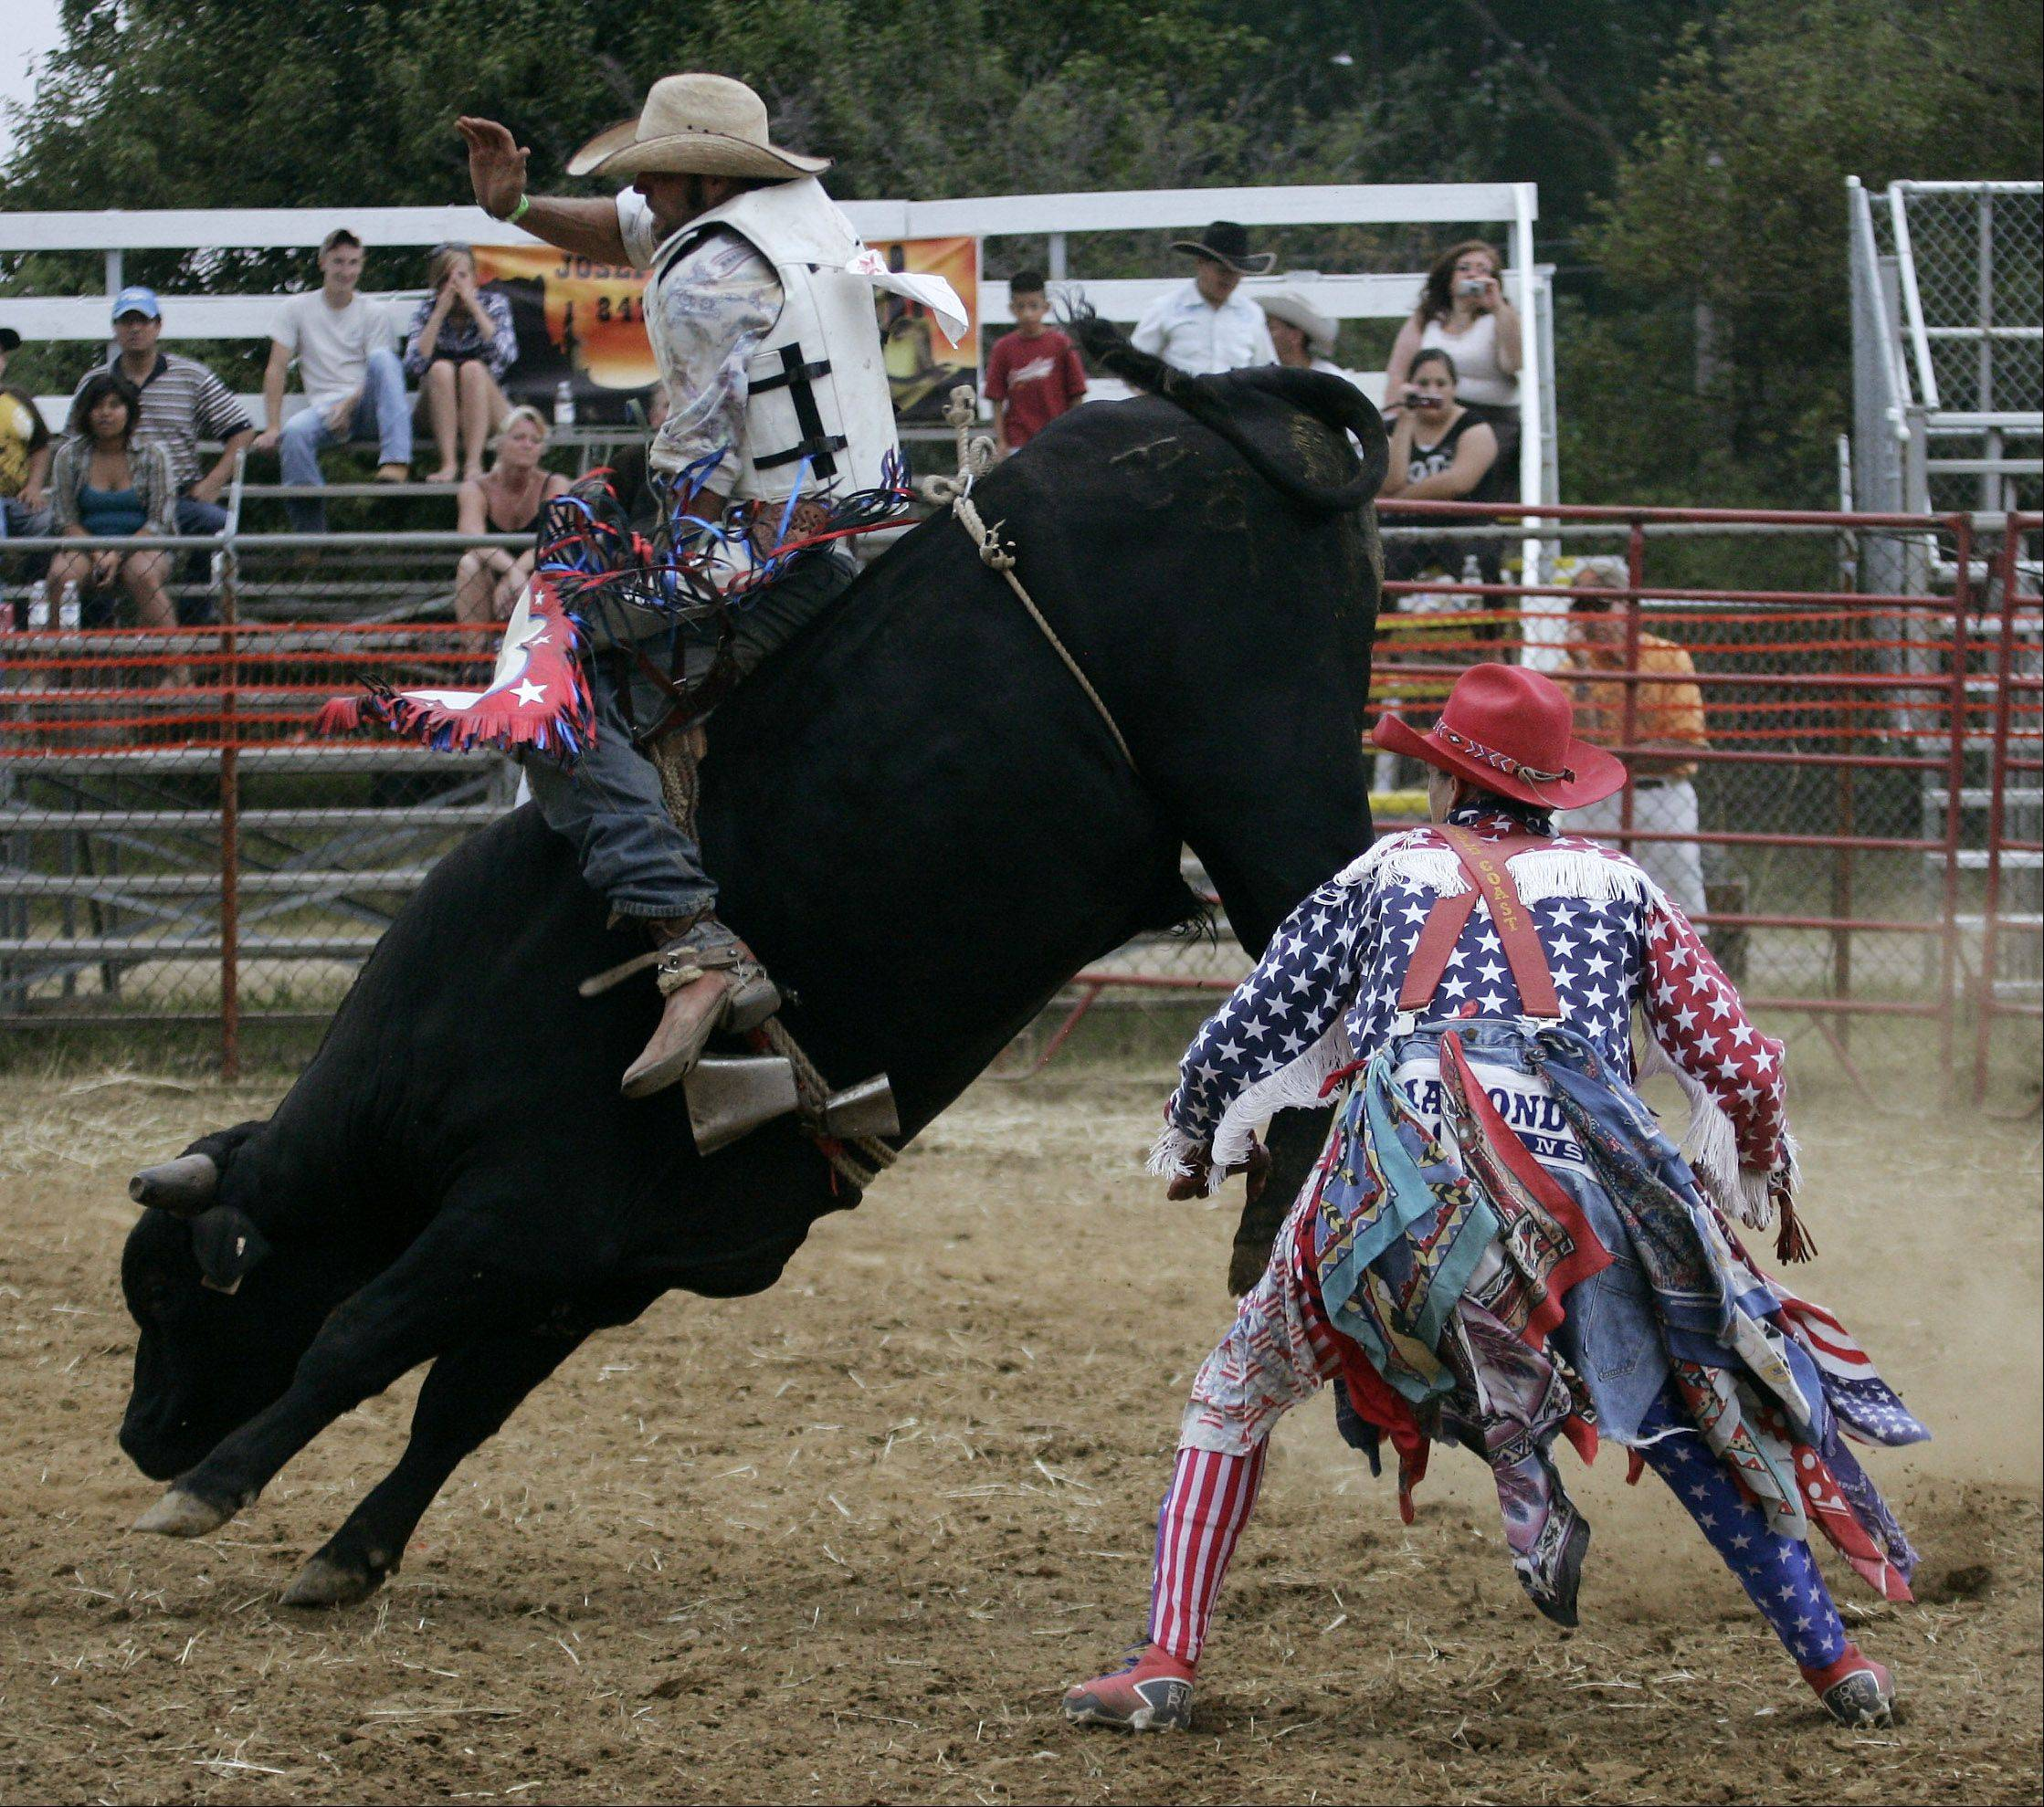 Bullfighter Ray Sikula stands near a bull as it tries to get rid of its rider in the rodeo arena.